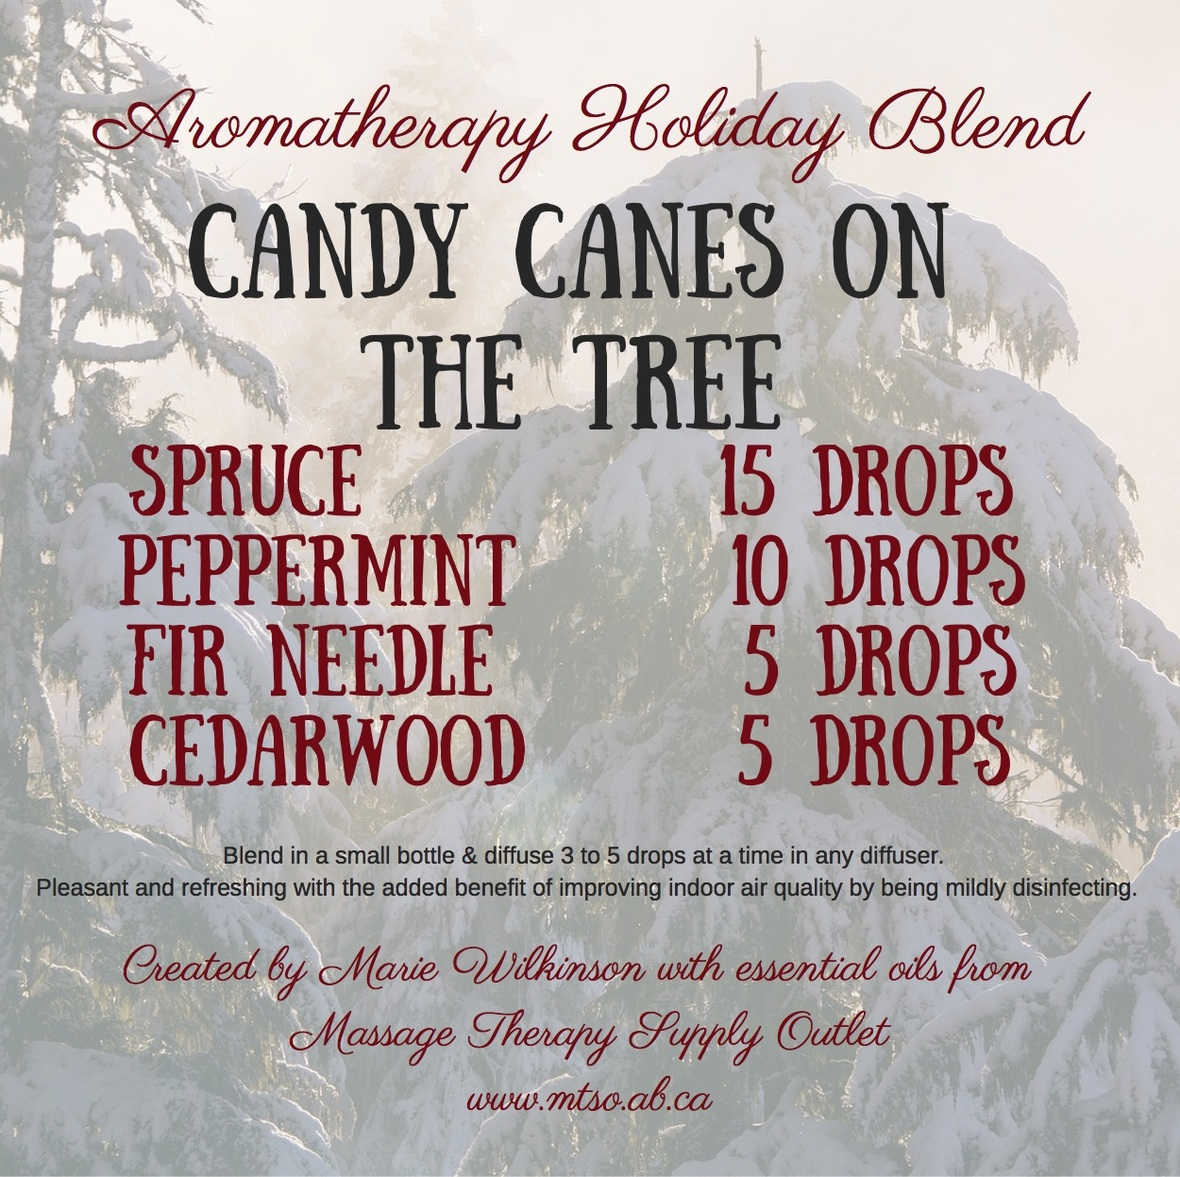 Candy Canes on the Tree - essential oils from MTSO